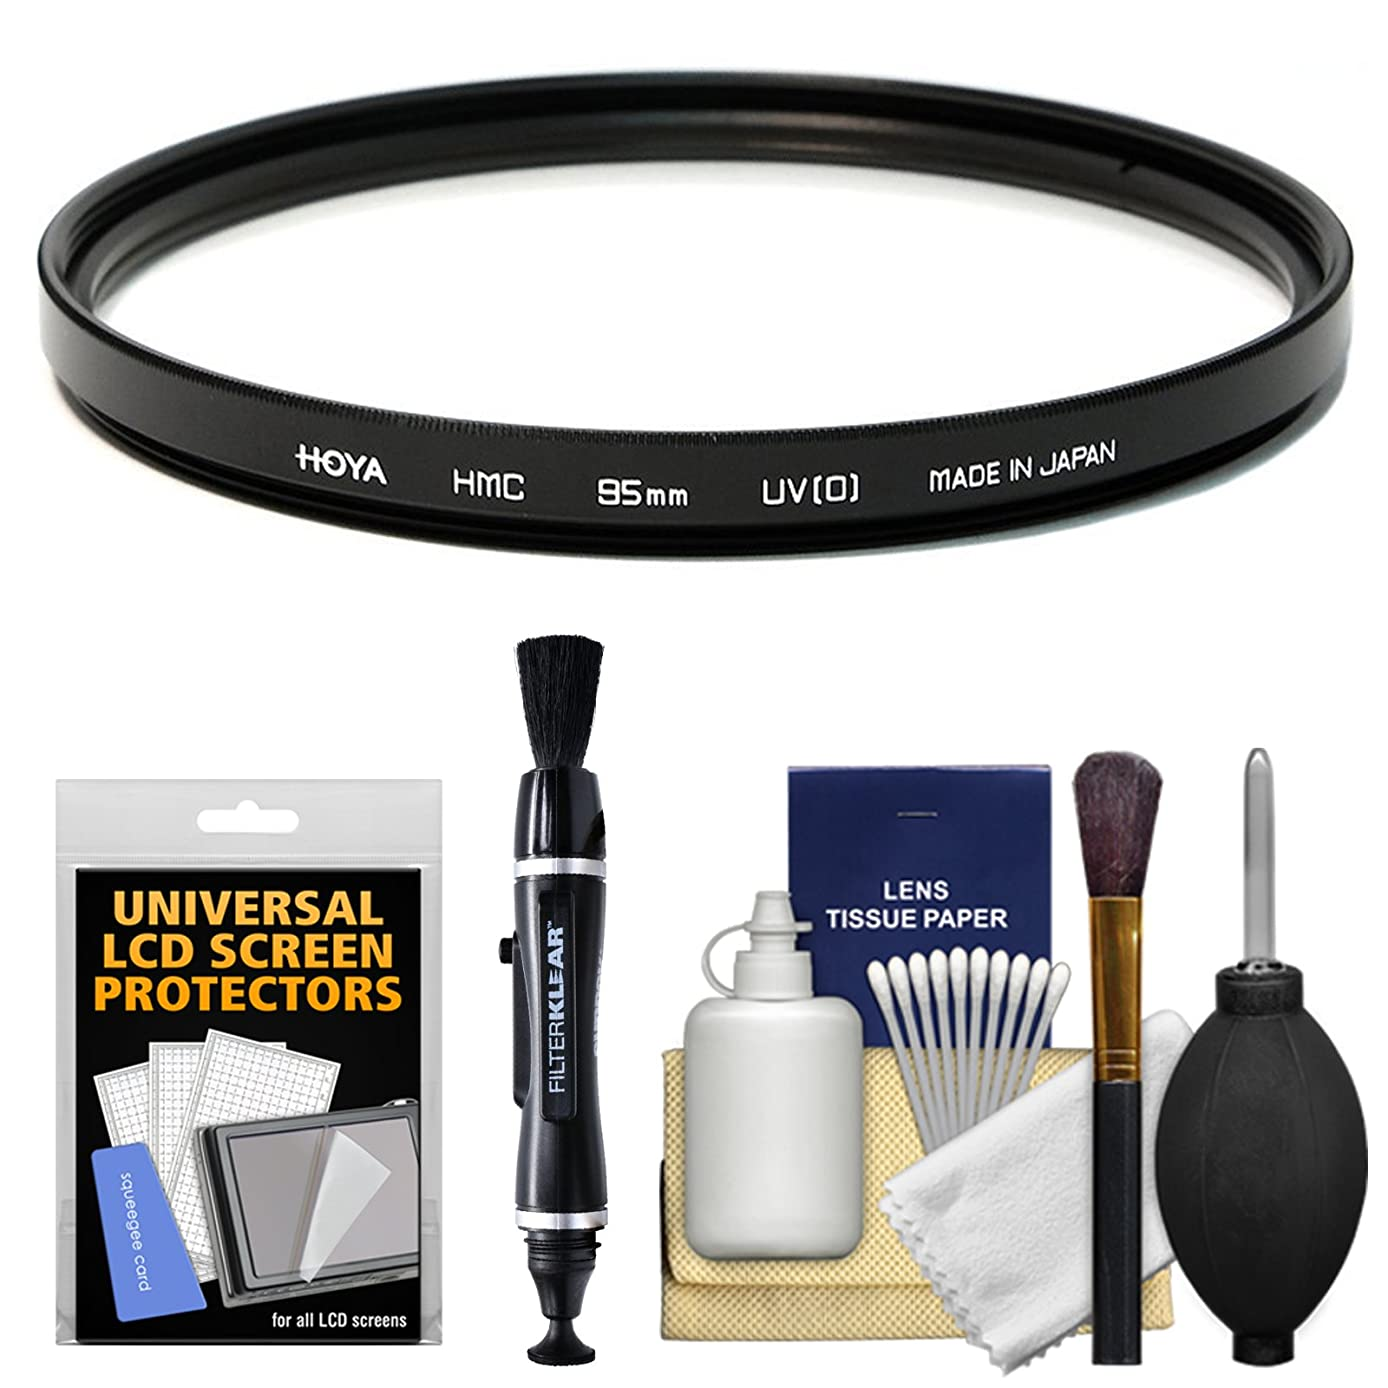 Hoya 95mm HMC UV (0) Glass Filter with LCD Protector + Cleaning Kit